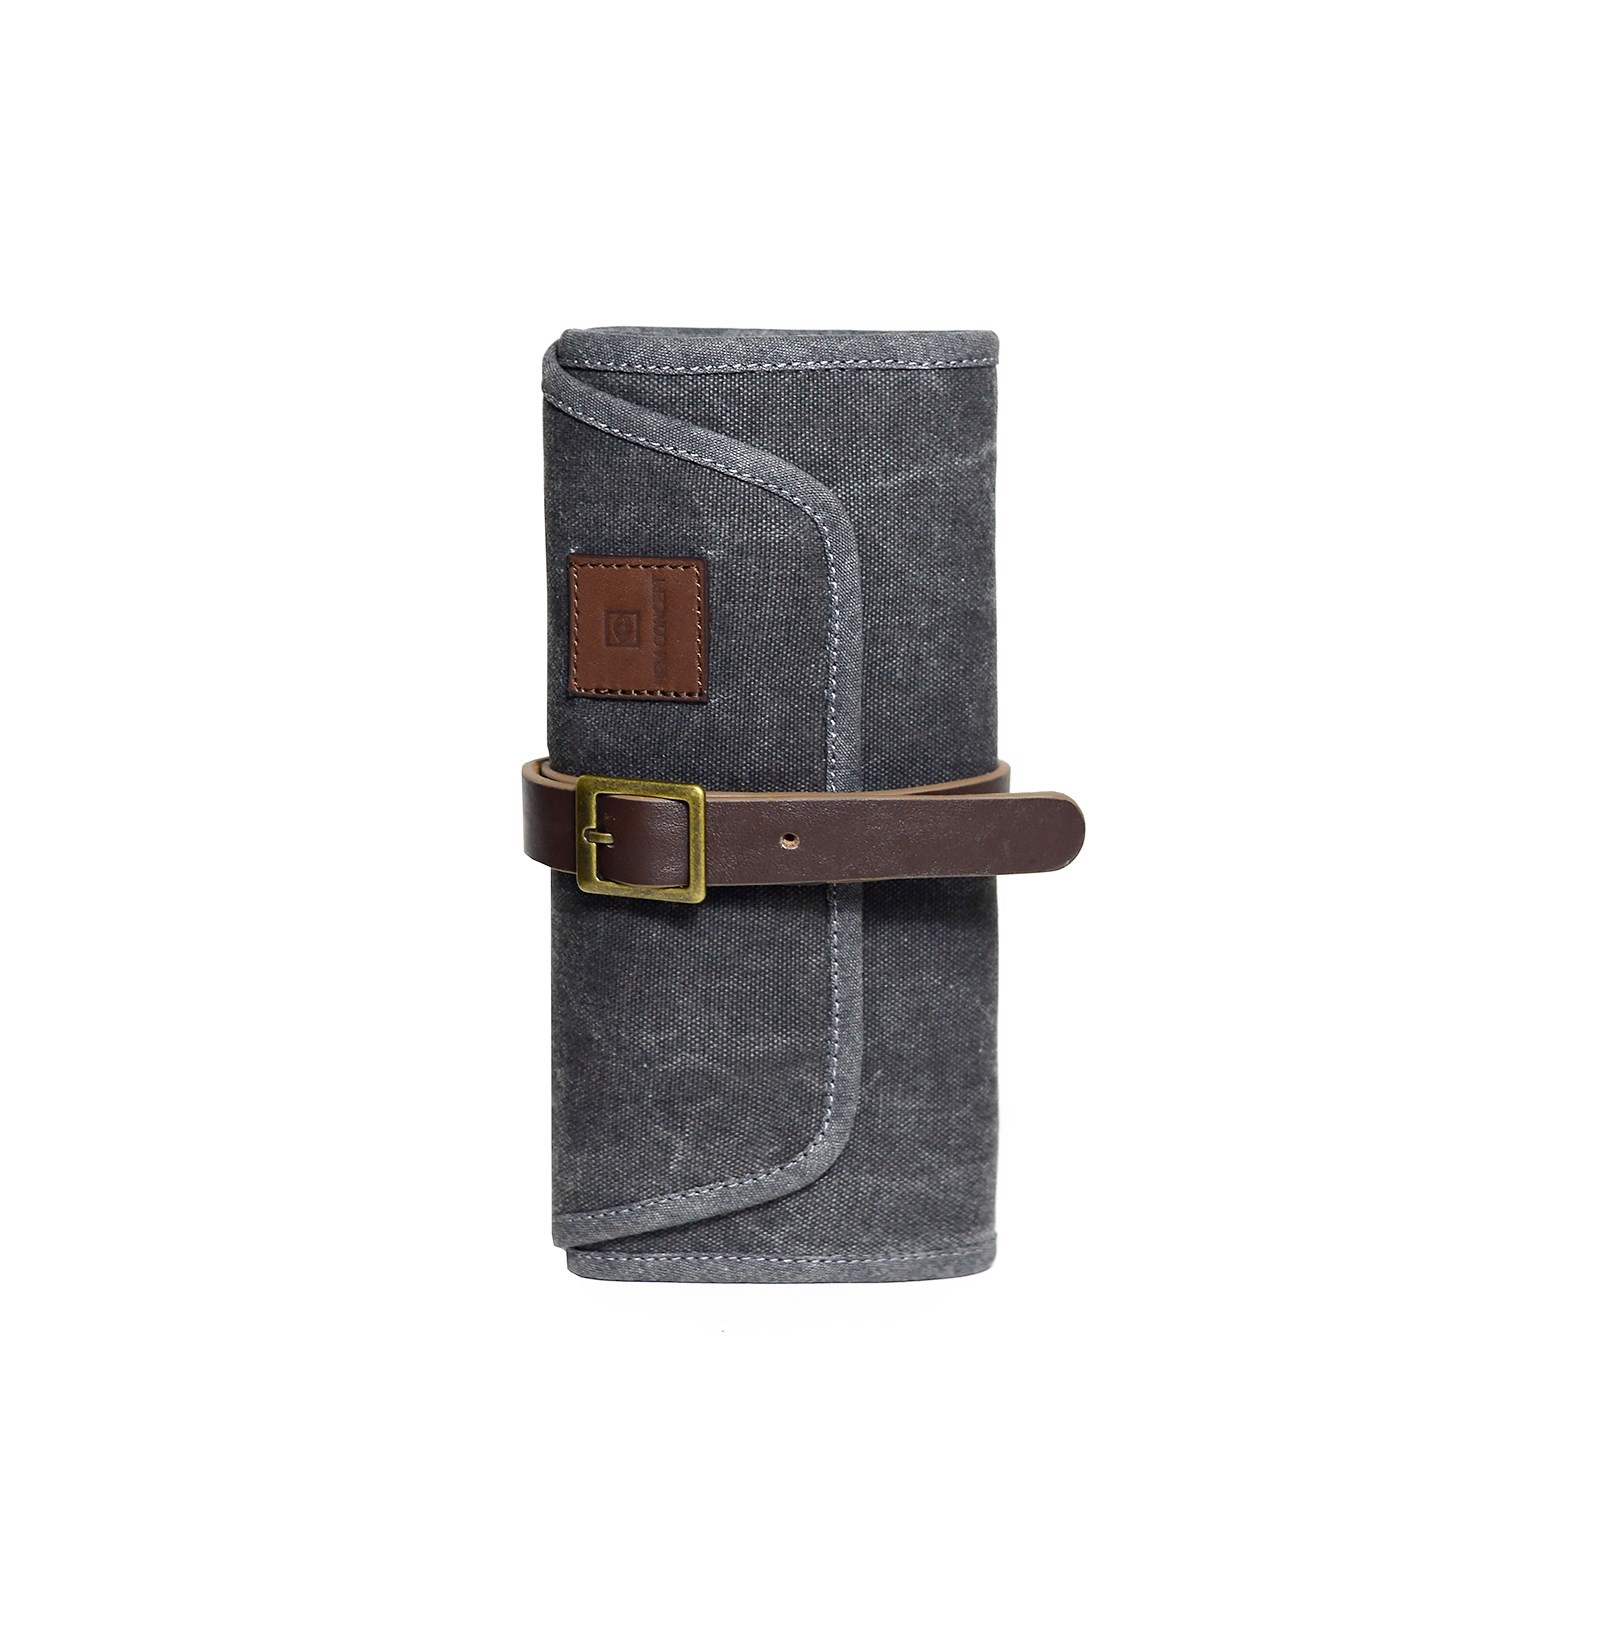 TOOL ROLL - WAXED GRAY